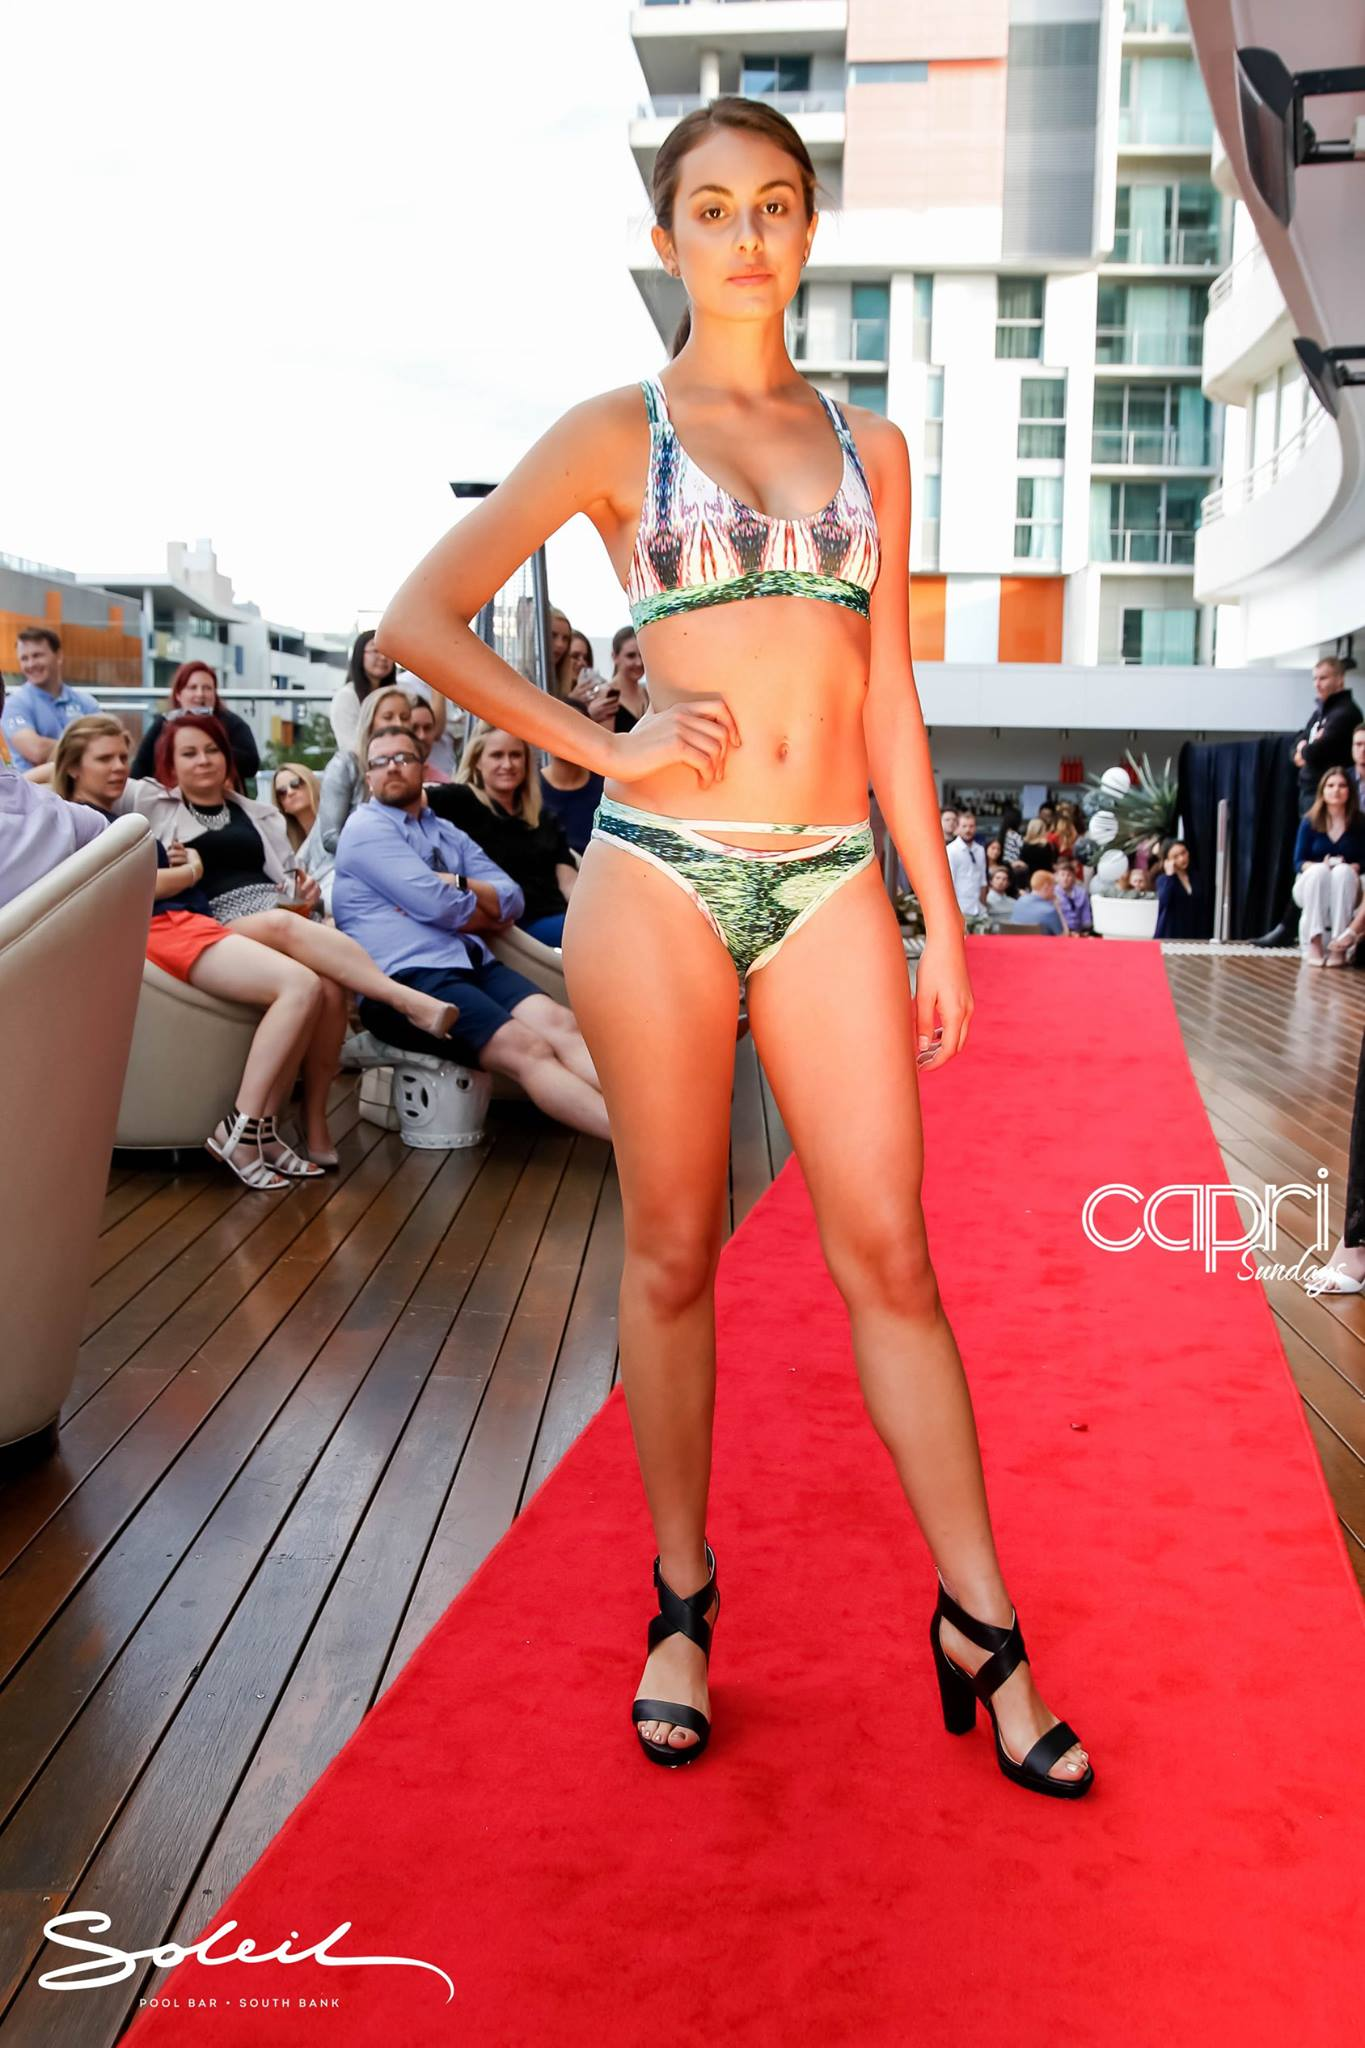 Capri Sundays Roof Top Fashion Runway September AlcieMay Designs Australian Fashion Emerging